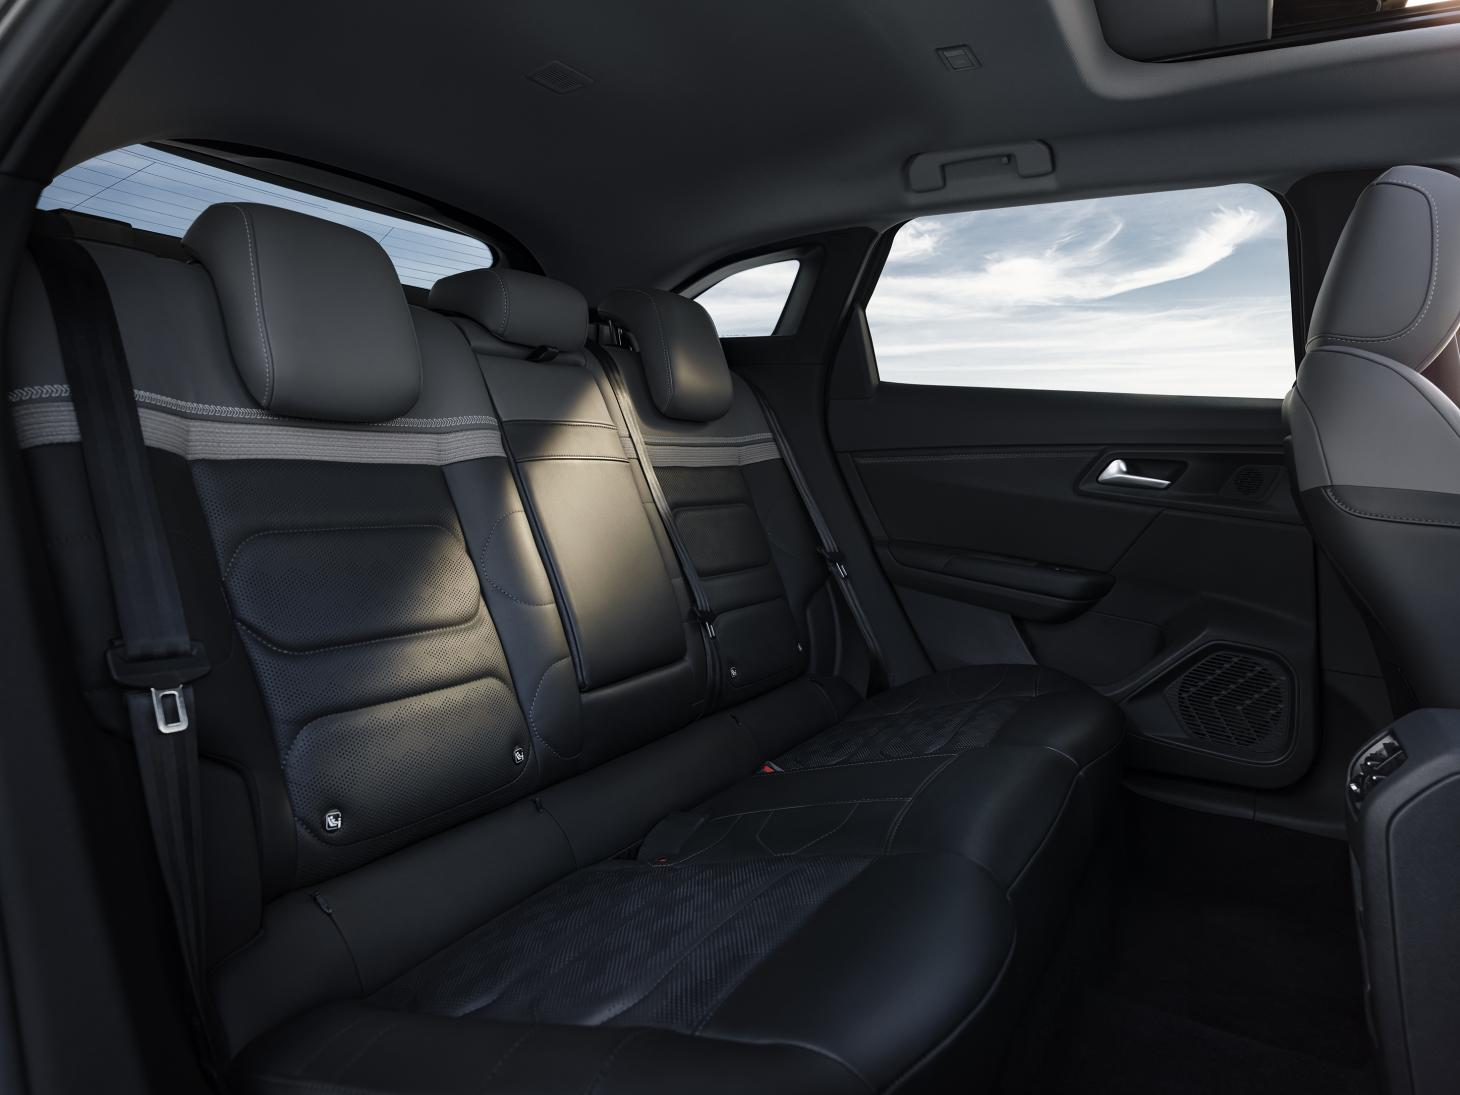 The Citroën C5 X is luxuriously spacious as well as being dynamic to drive